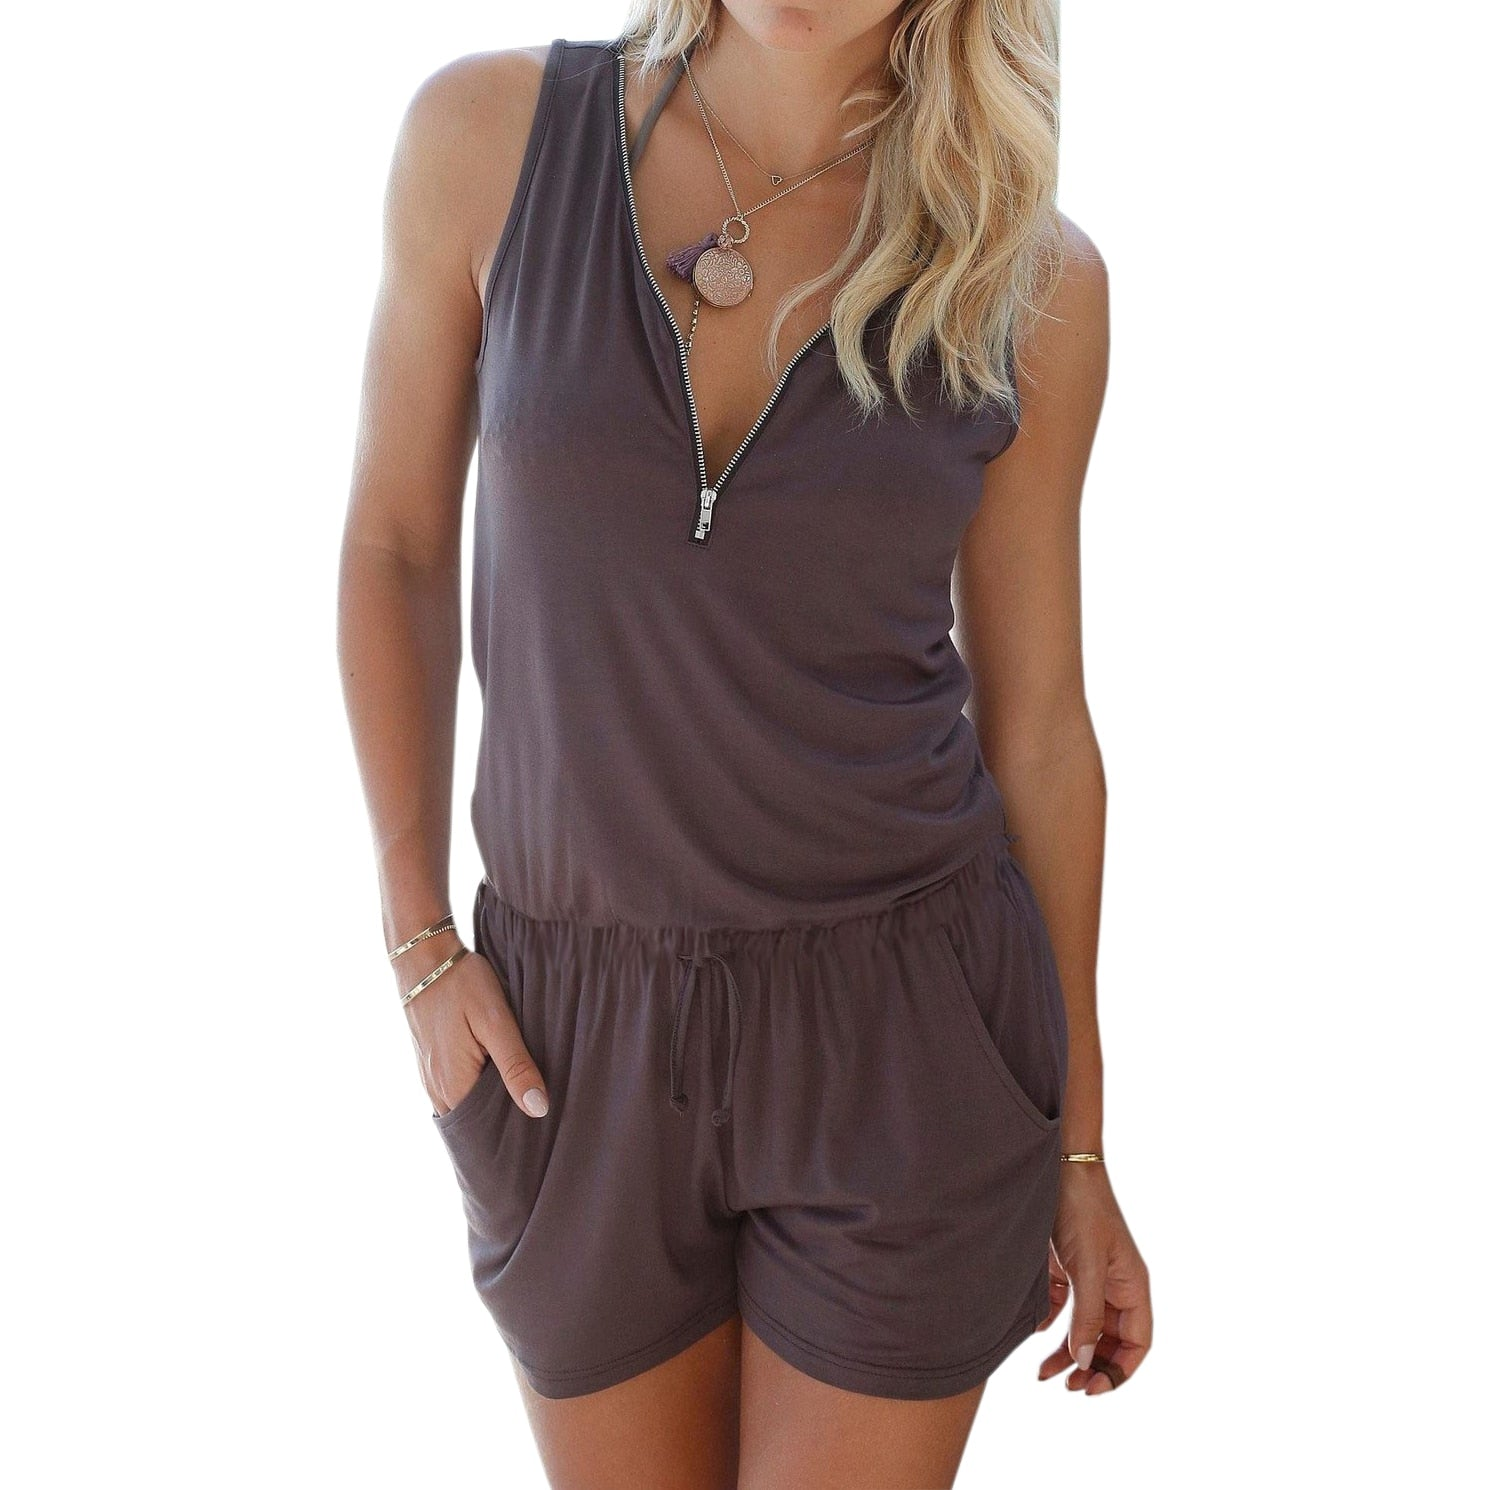 Beach Summer Playsuits Sleeveless V-neck Women Jumpsuits Shorts Solid Pockets Zipper Casual Office Playsuits Overalls 4XL GV686-geekbuyig